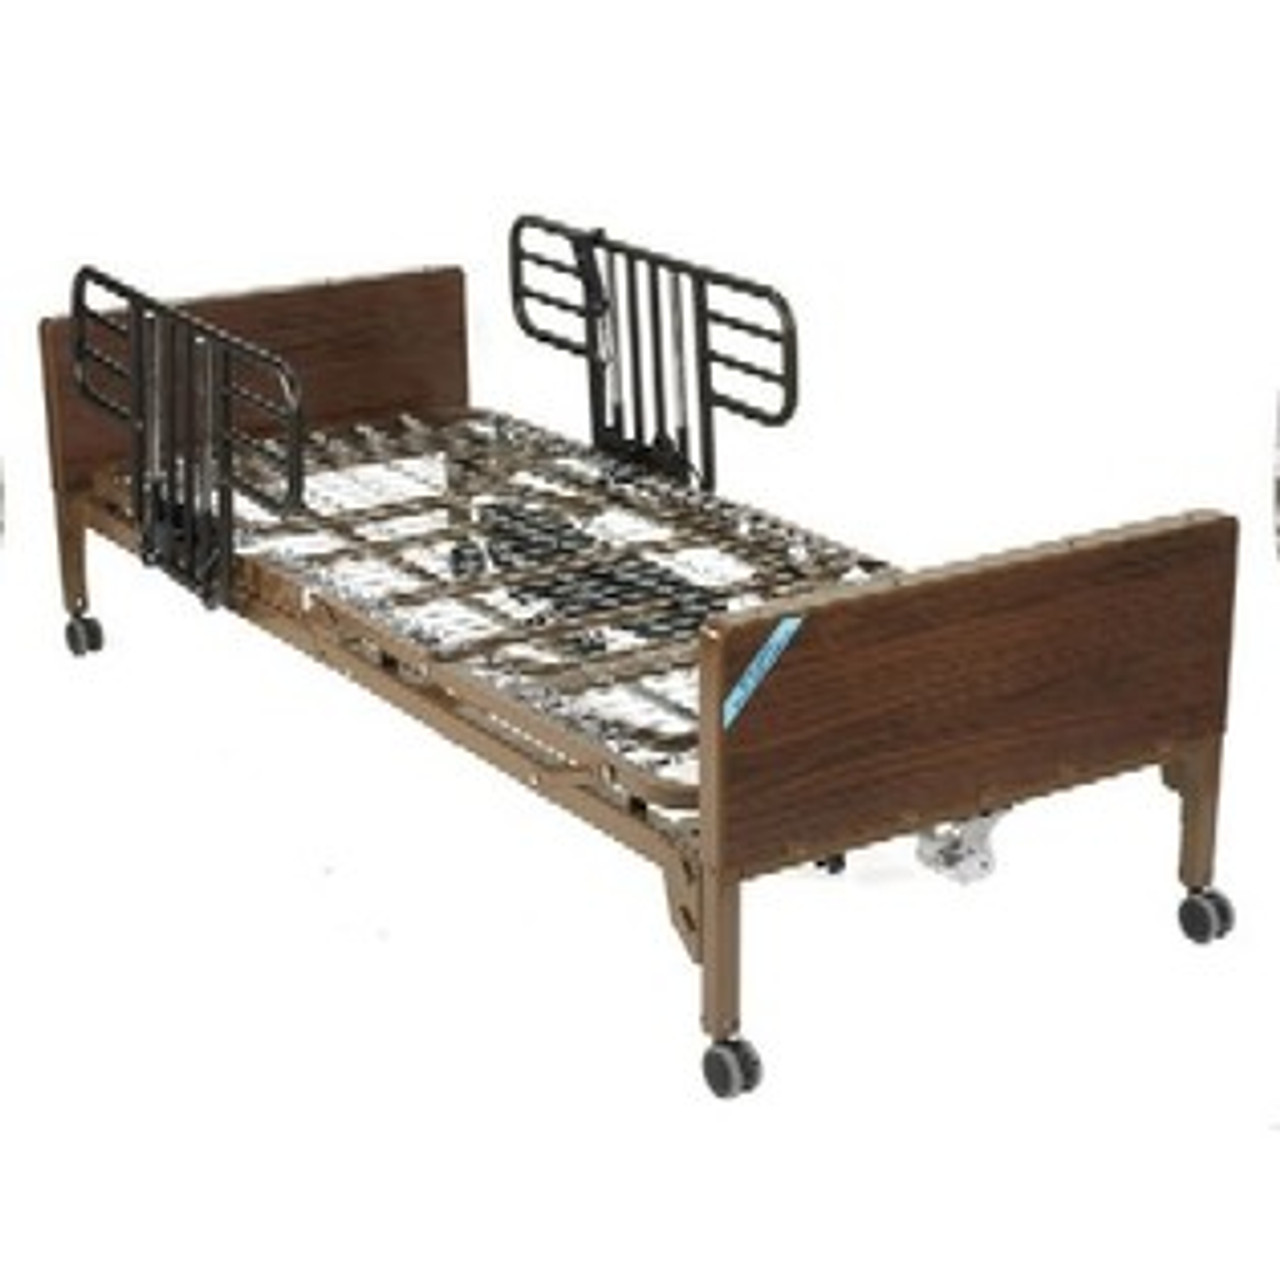 Roscoe Full-Electric Hospital Bed